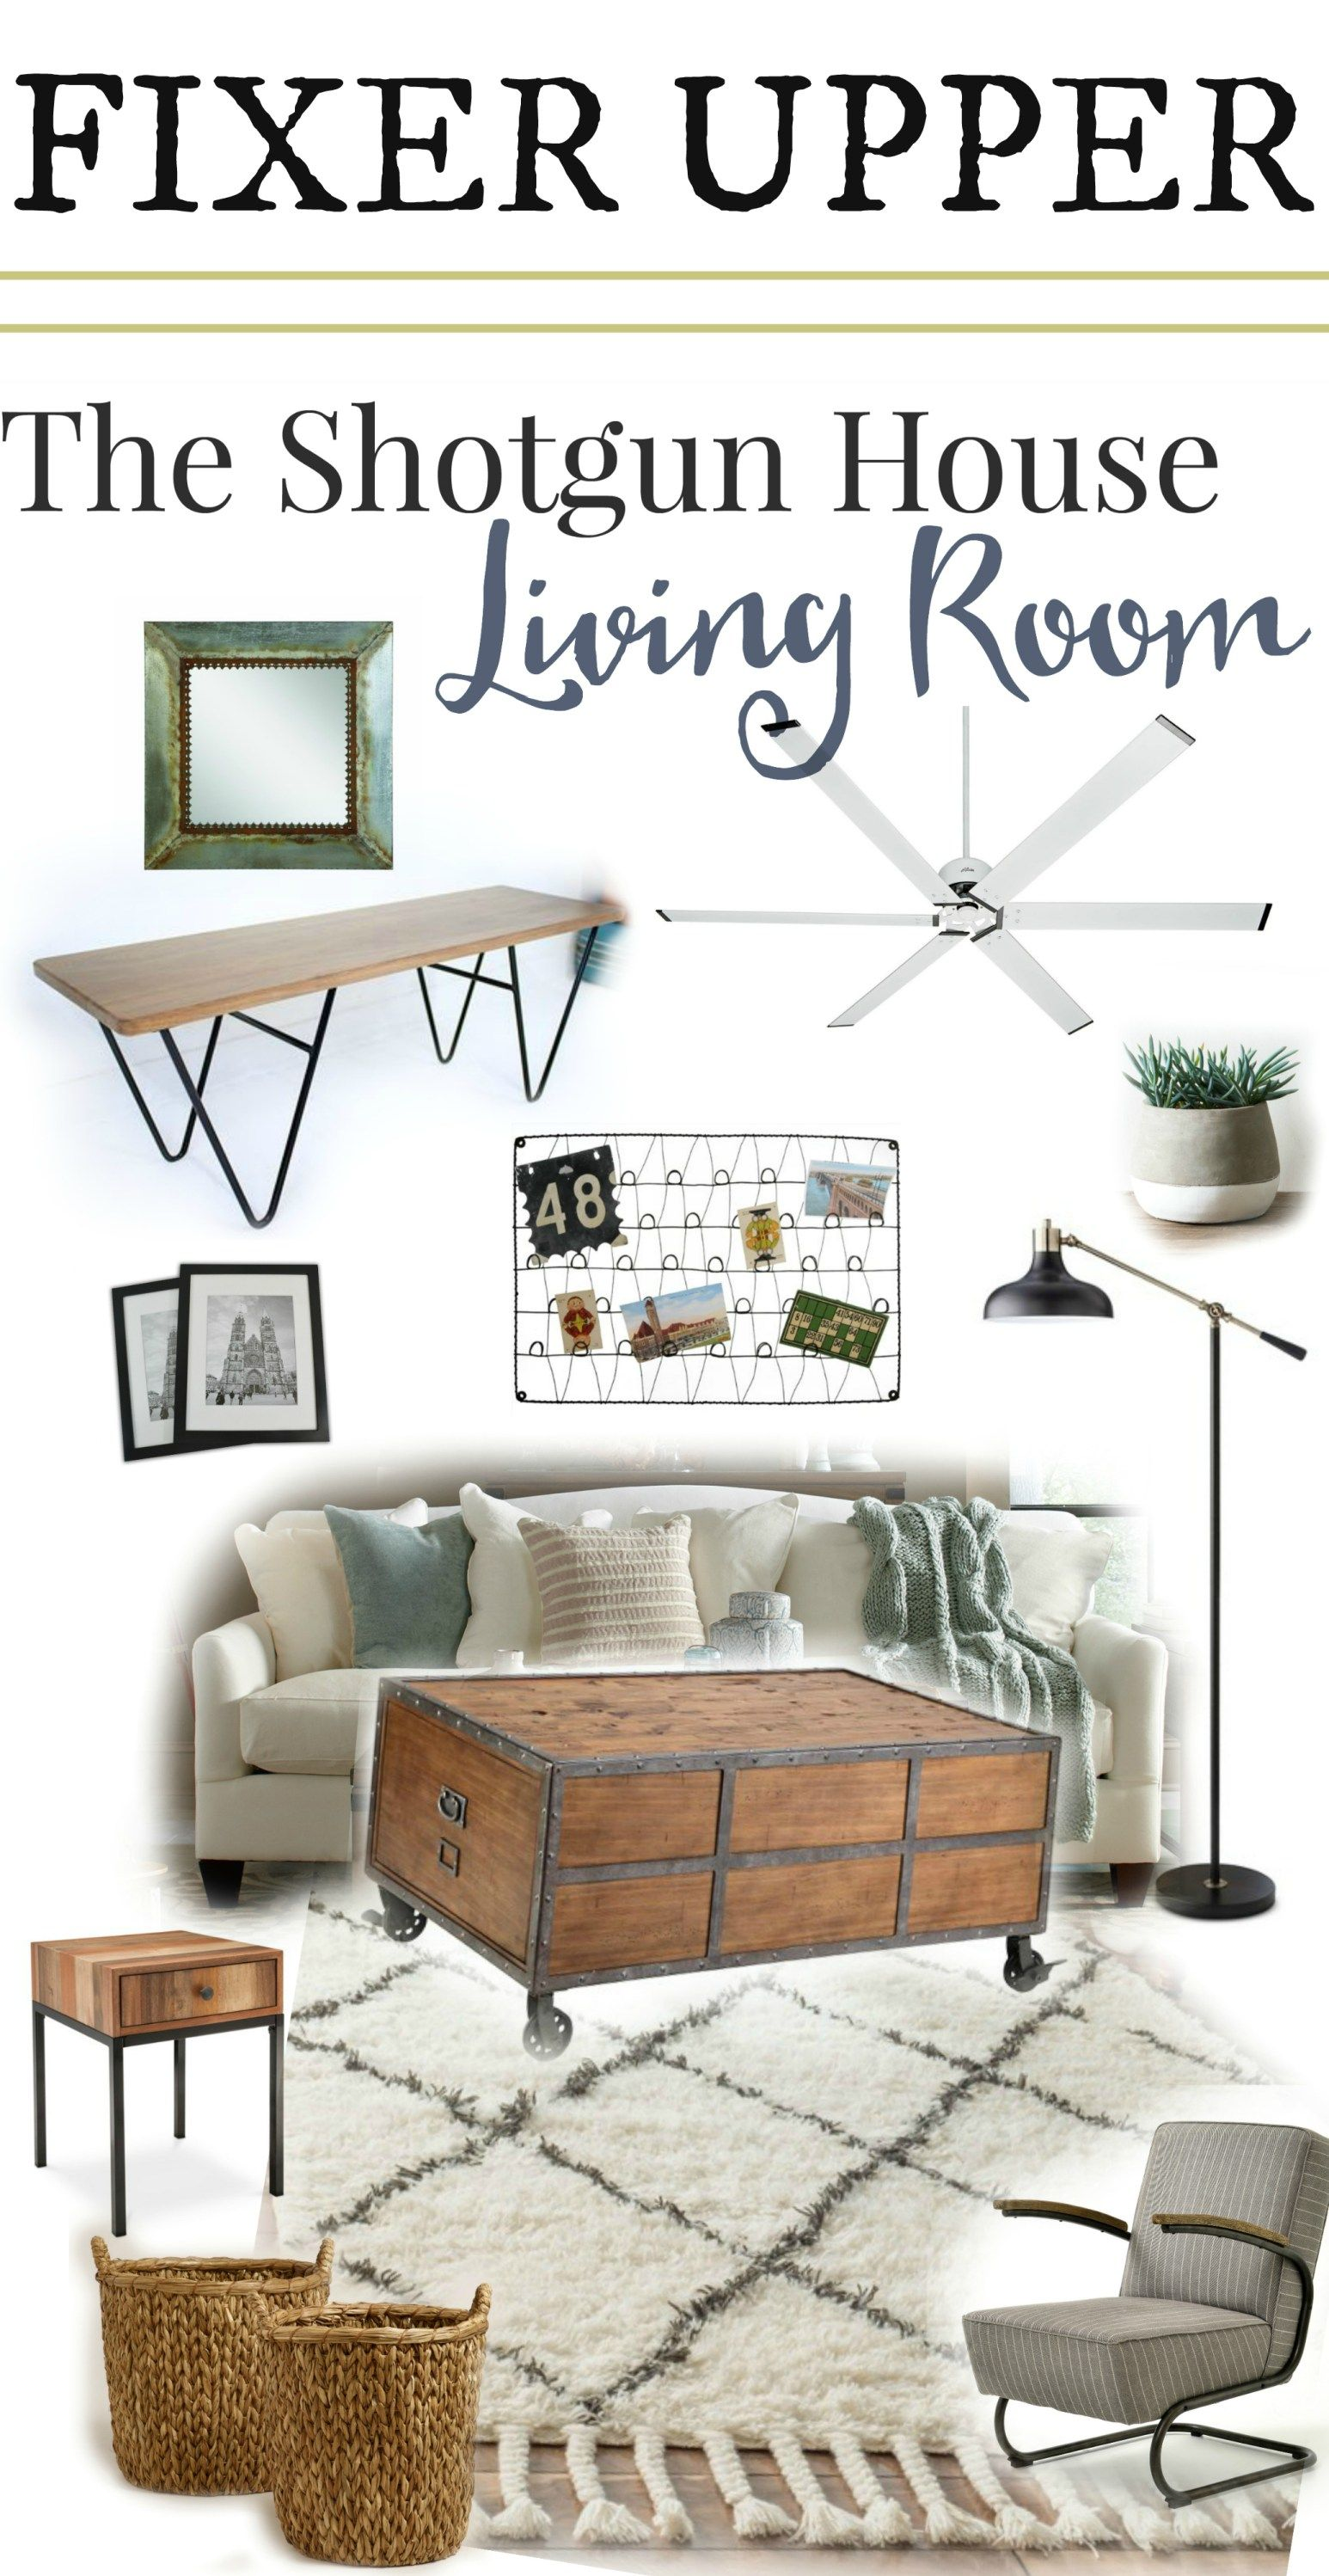 List Of Living Room Furniture. Fixer Upper The Shotgun House Living Room  most complete source list of products used Get the Look house Industrial